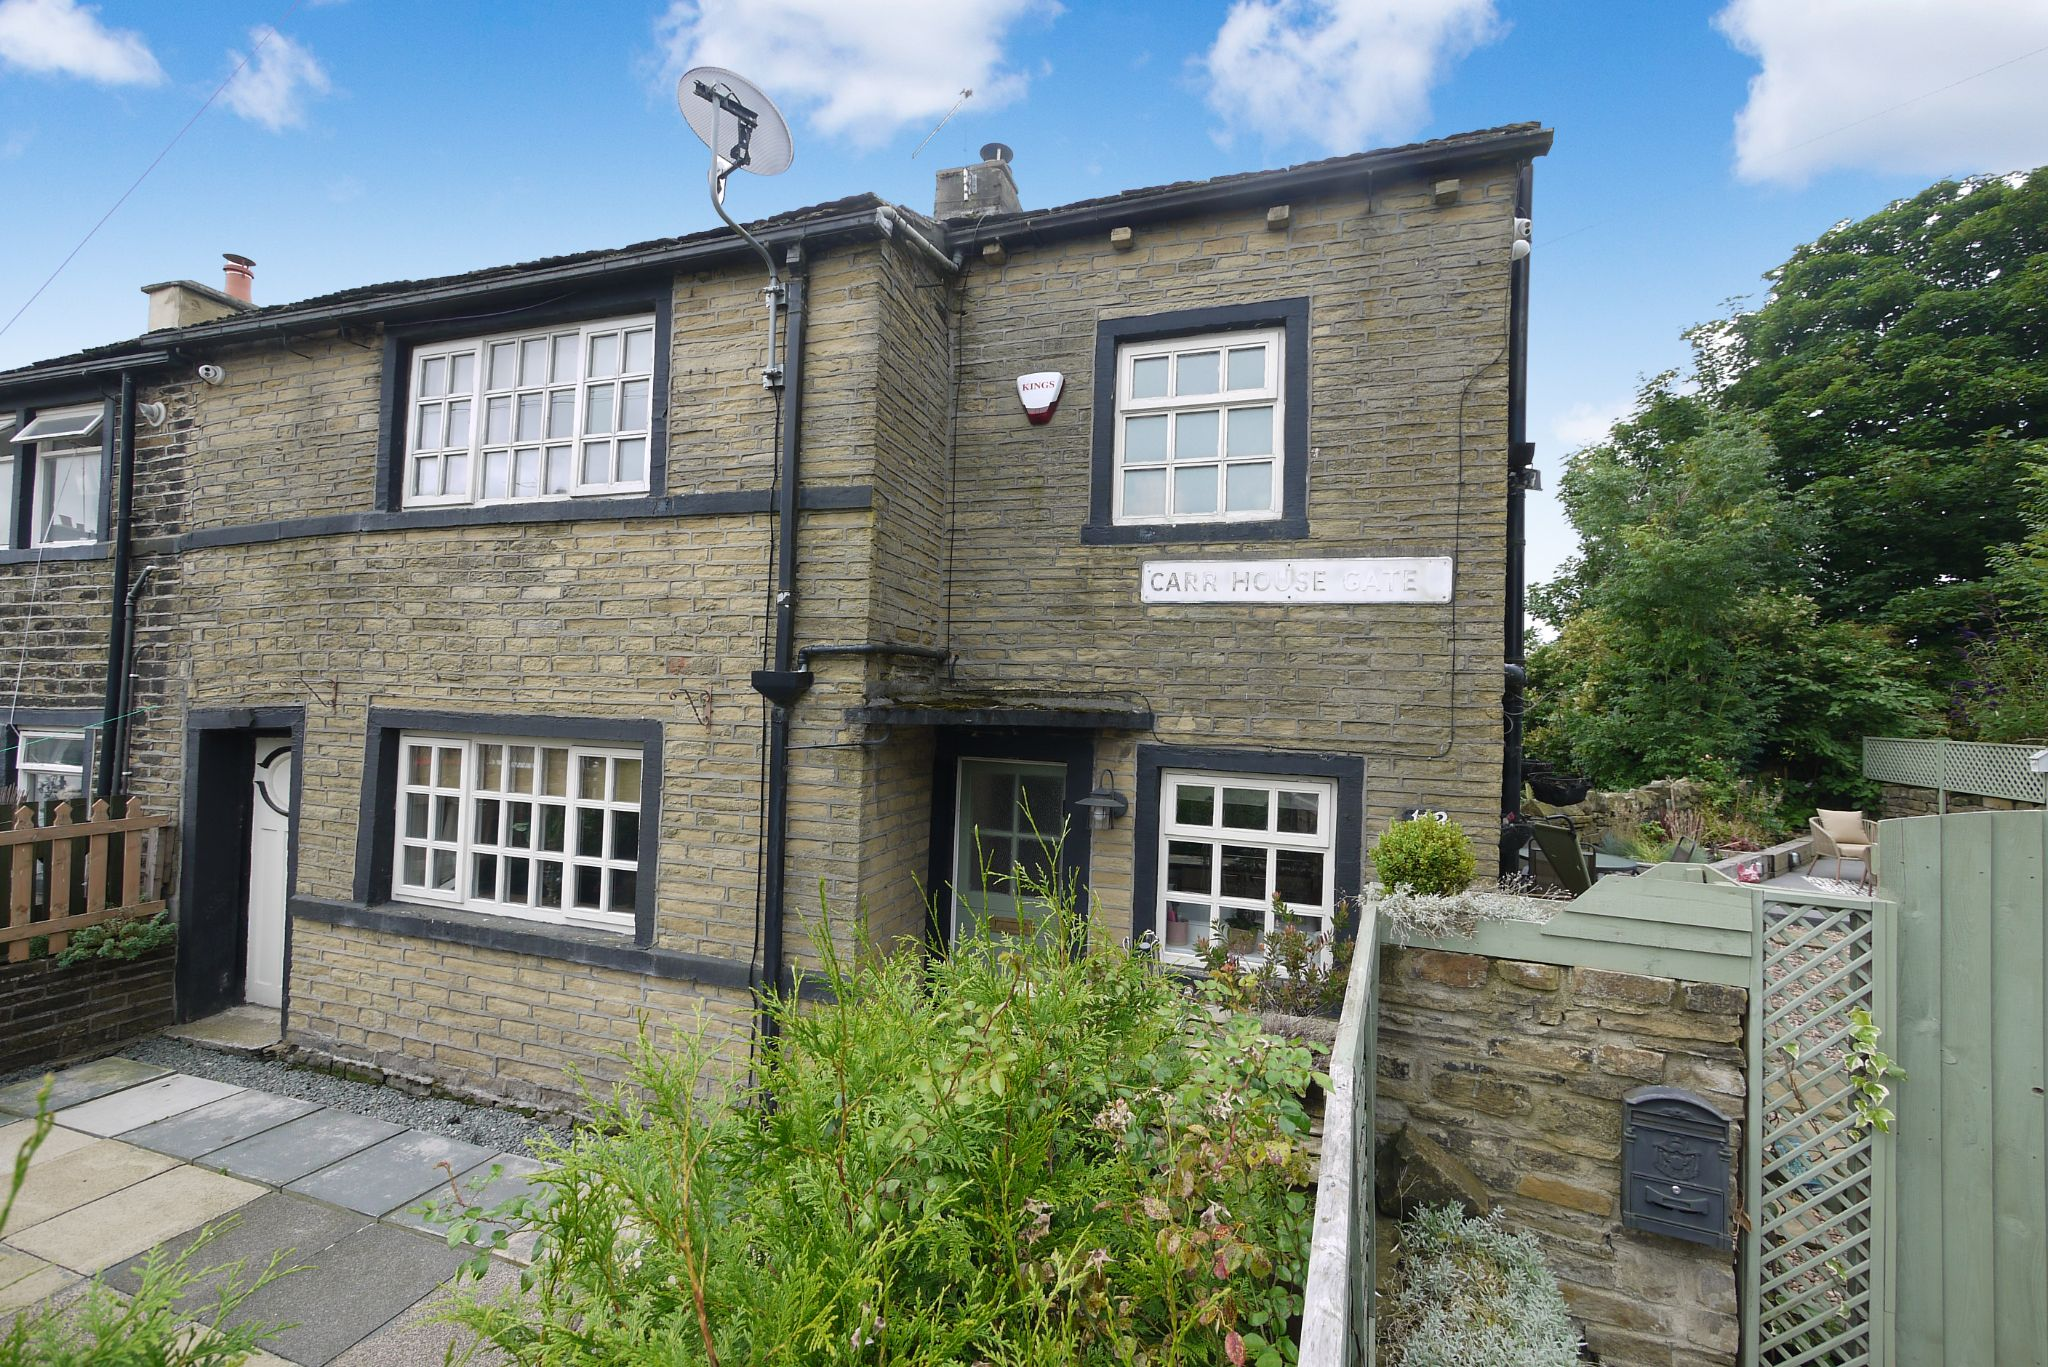 2 bedroom cottage house SSTC in Bradford - Photograph 1.